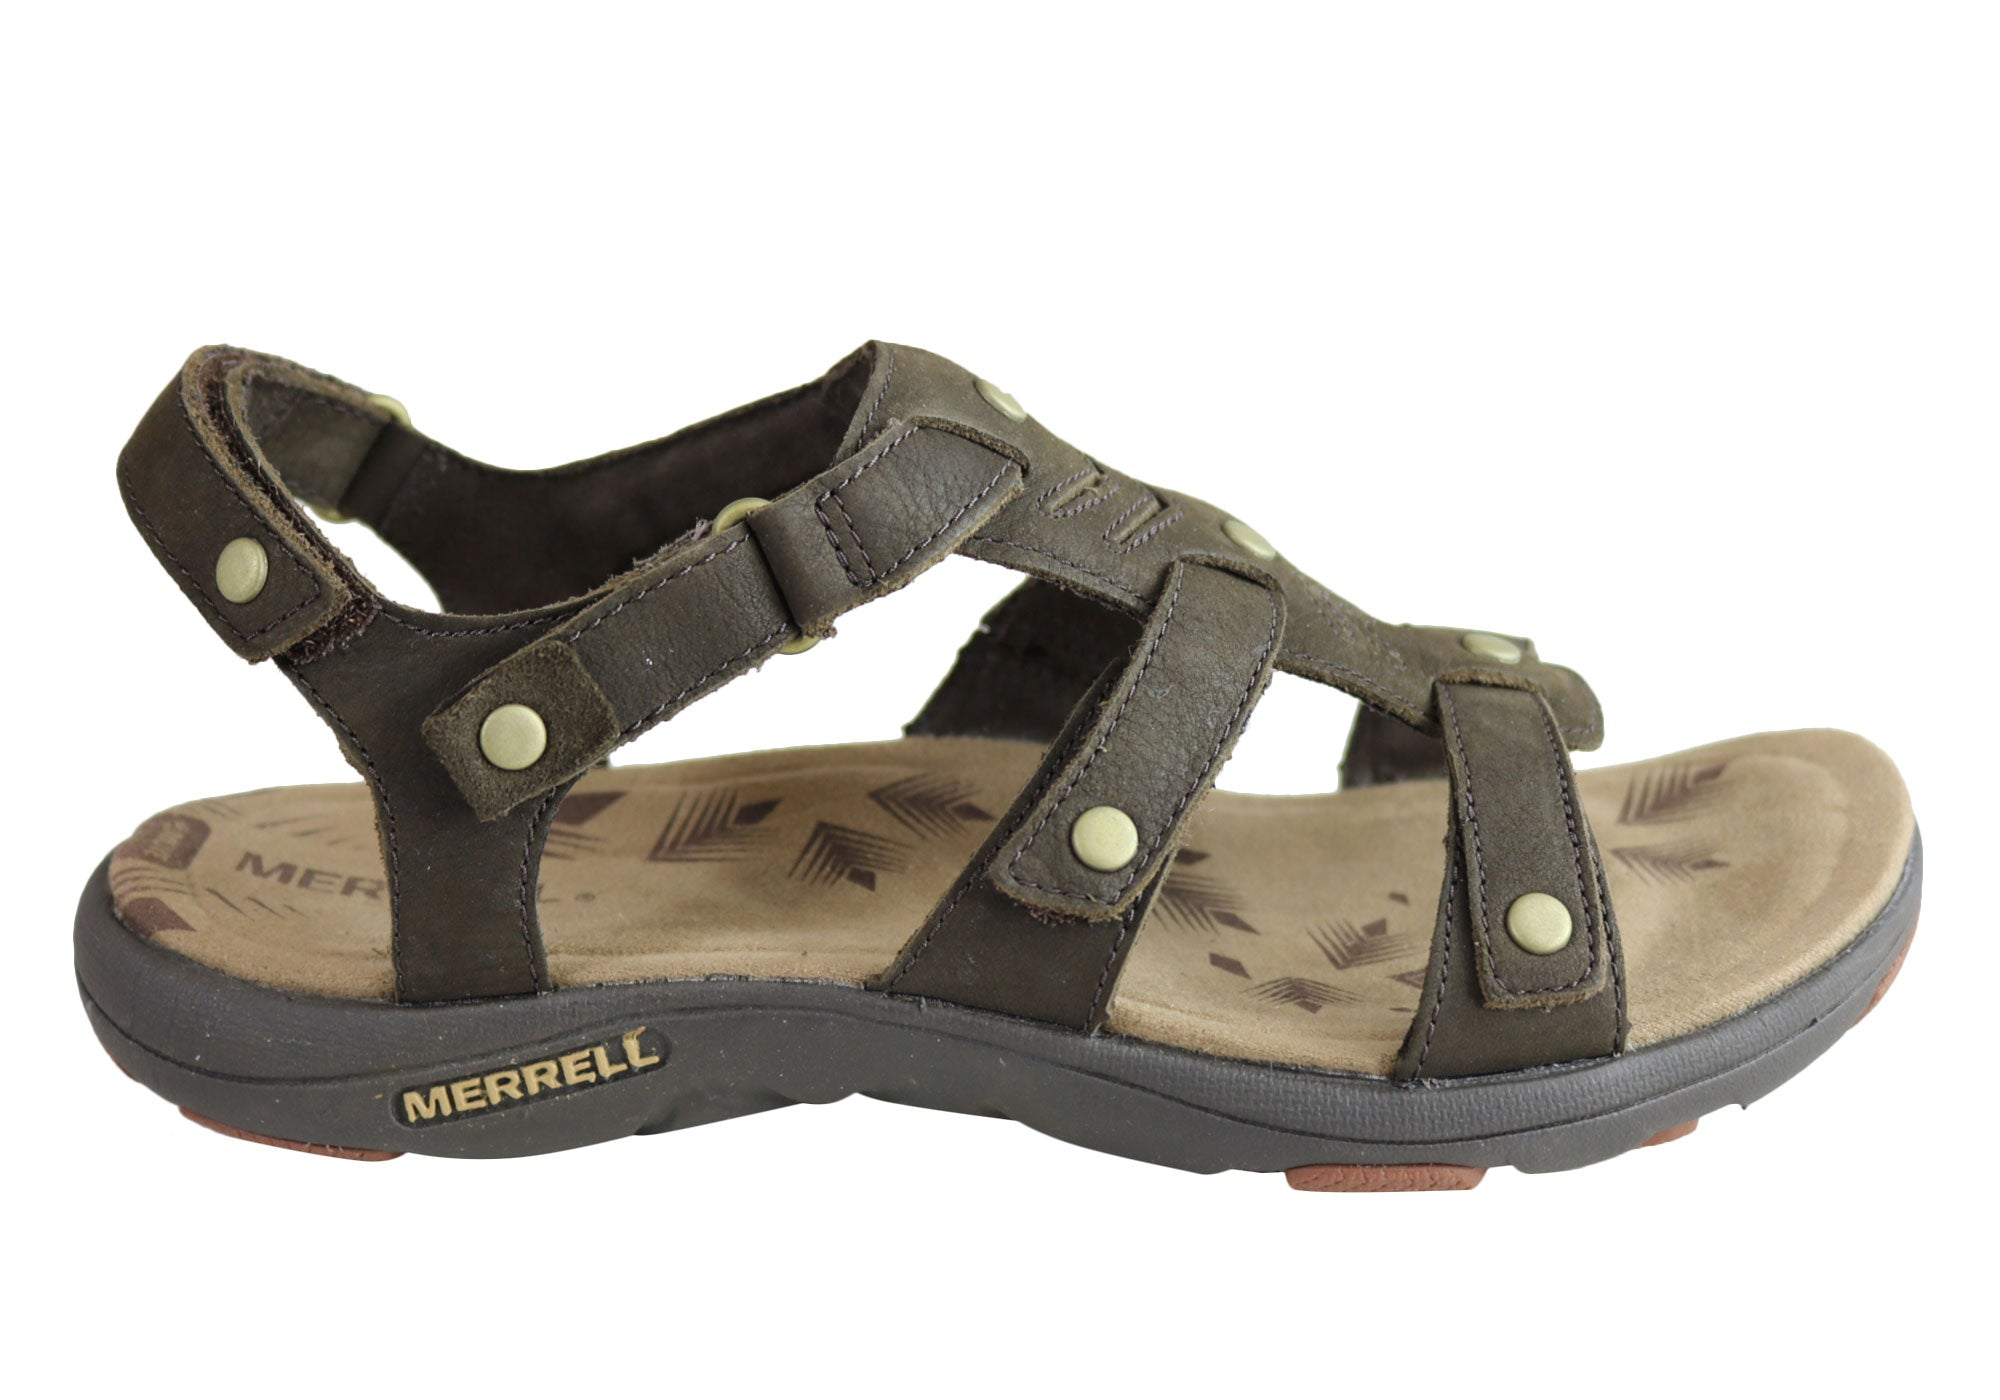 78ba12a6722 Home Merrell Womens Comfort Flat Supportive Adhera Three Strap II Sandals.  Brown ...